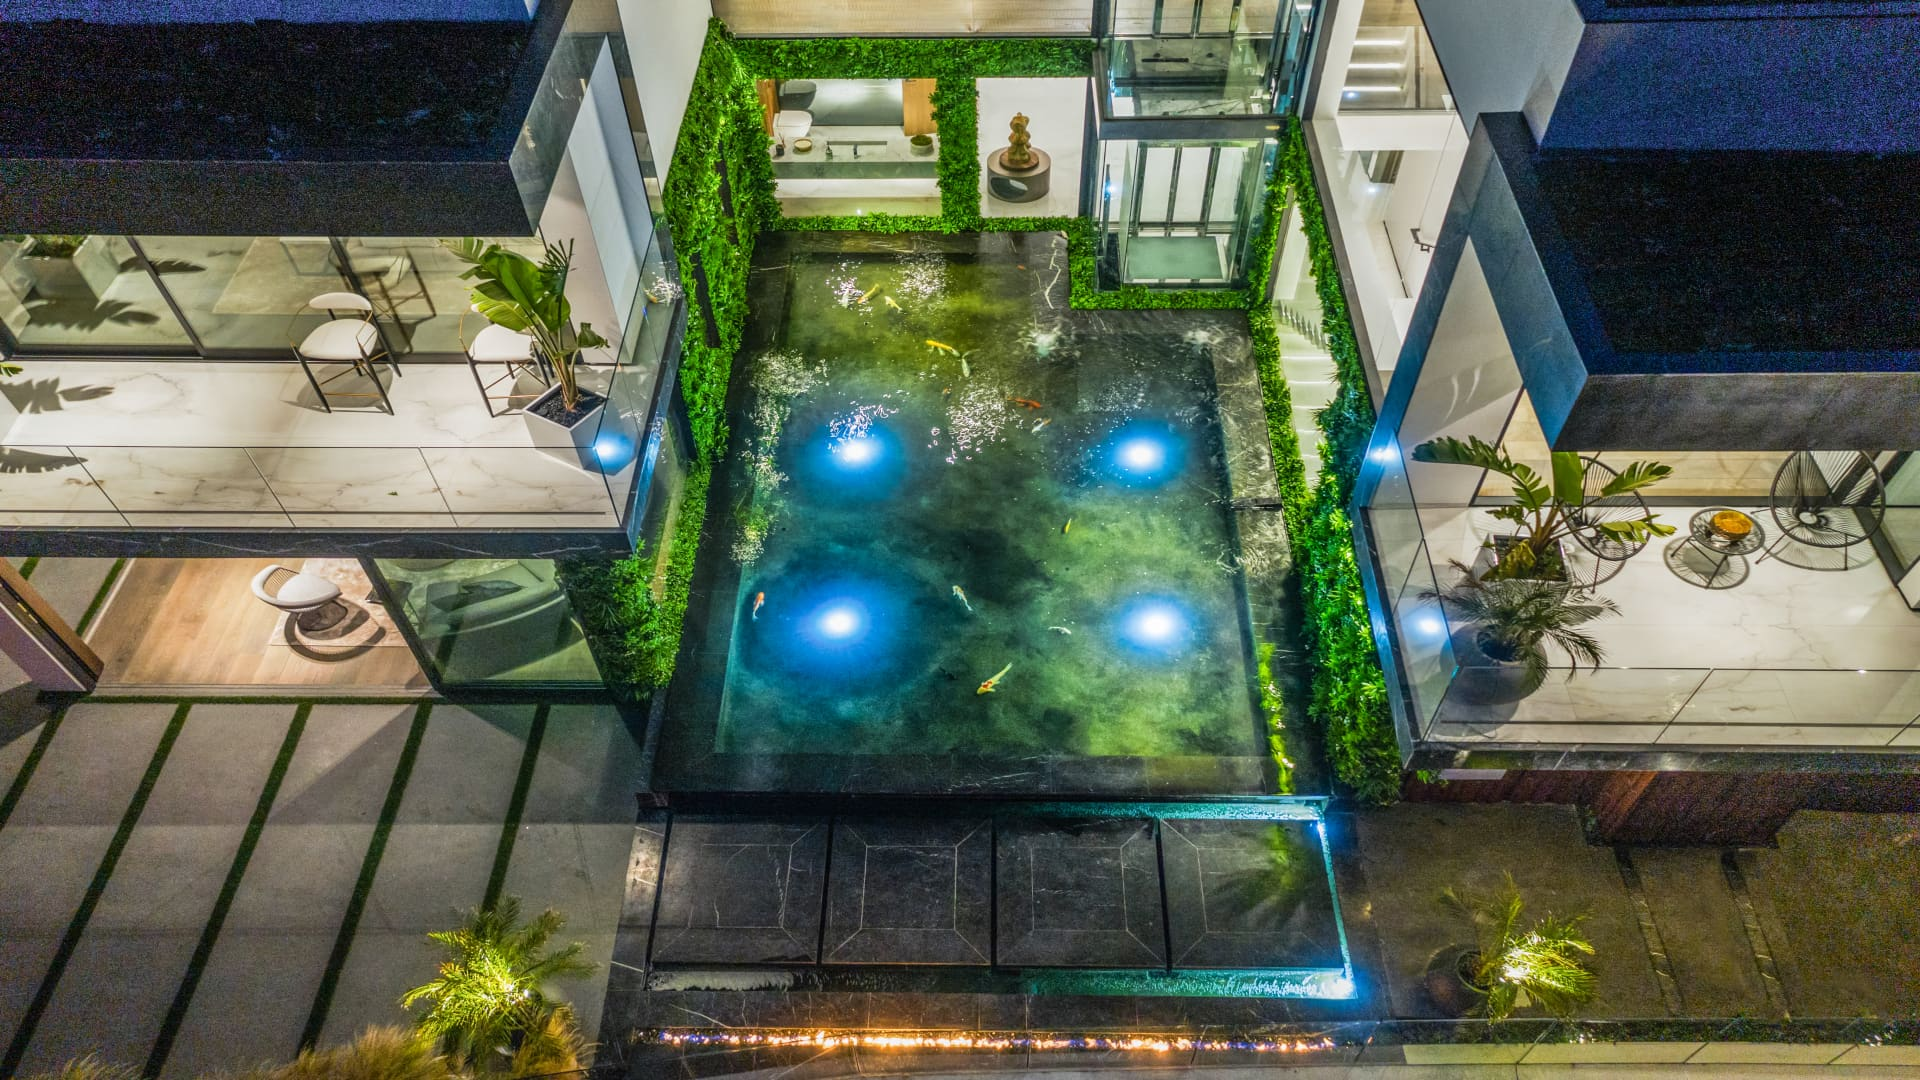 The view from above the home's outdoor koi pond.